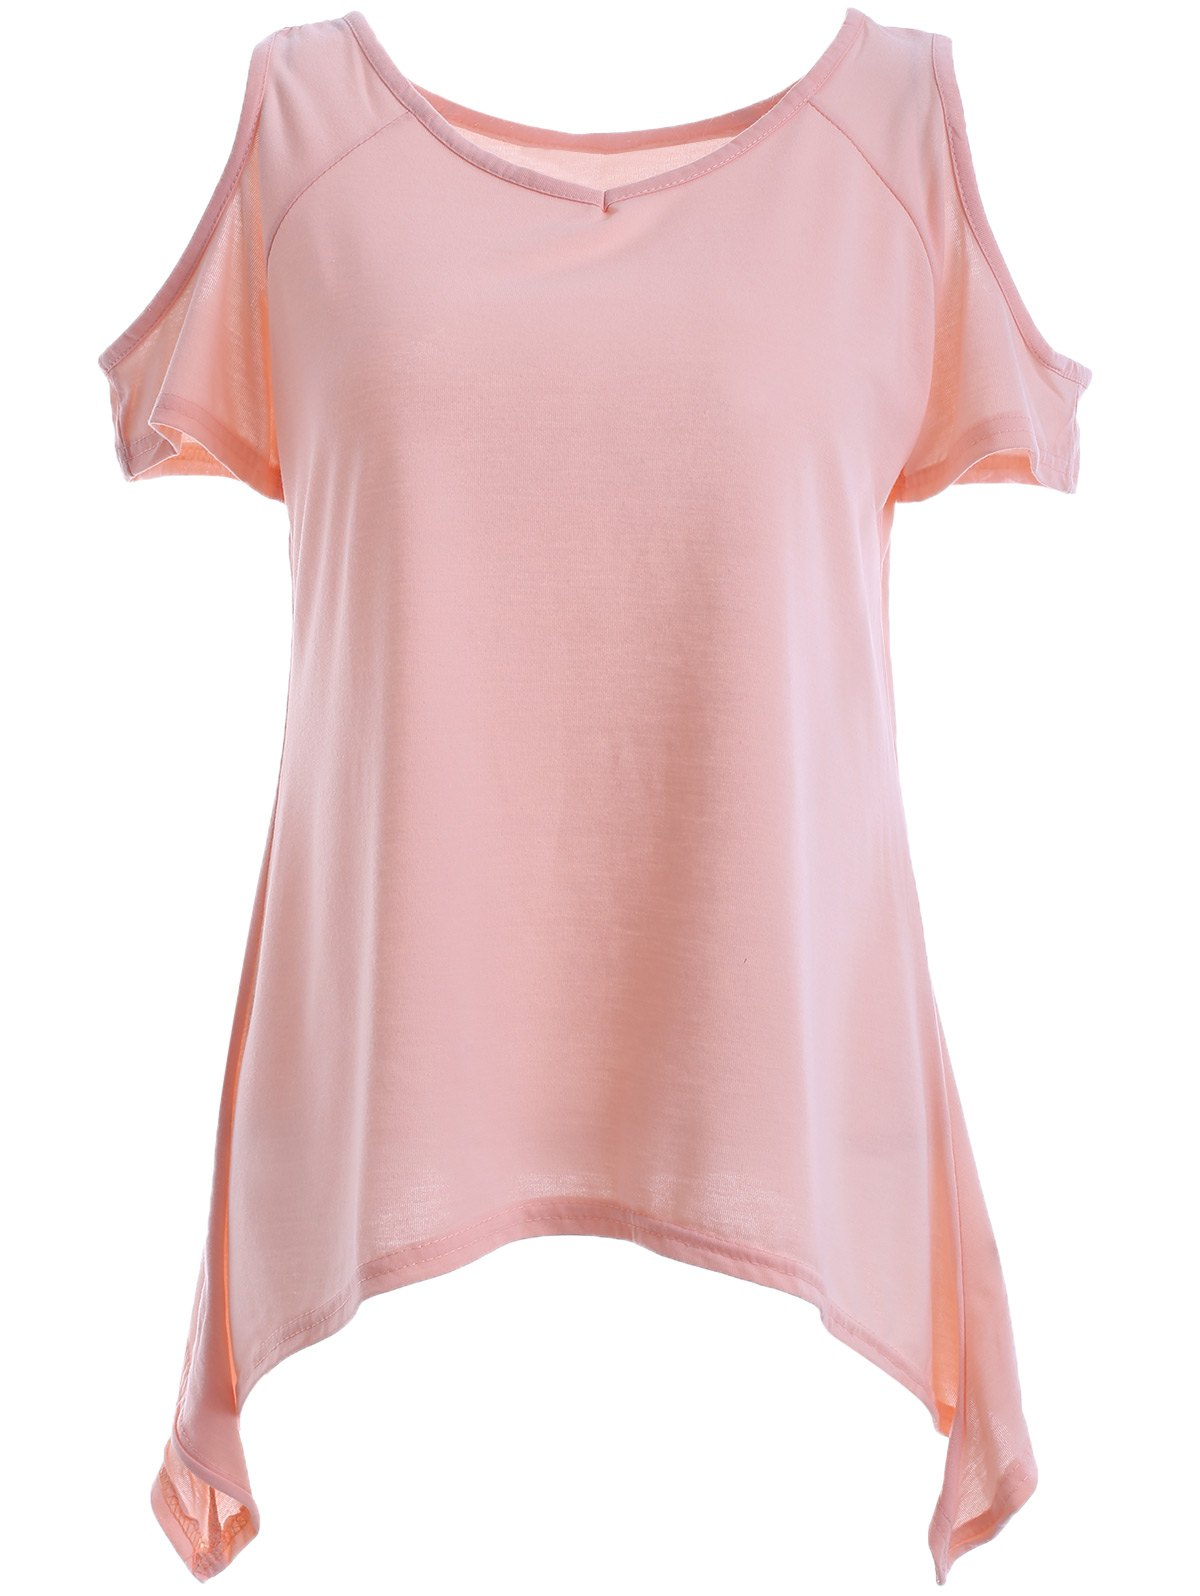 Casual Women's Scoop Neck Cold Shoulder Asymmetric Short Sleeves Blouse - PINK 2XL